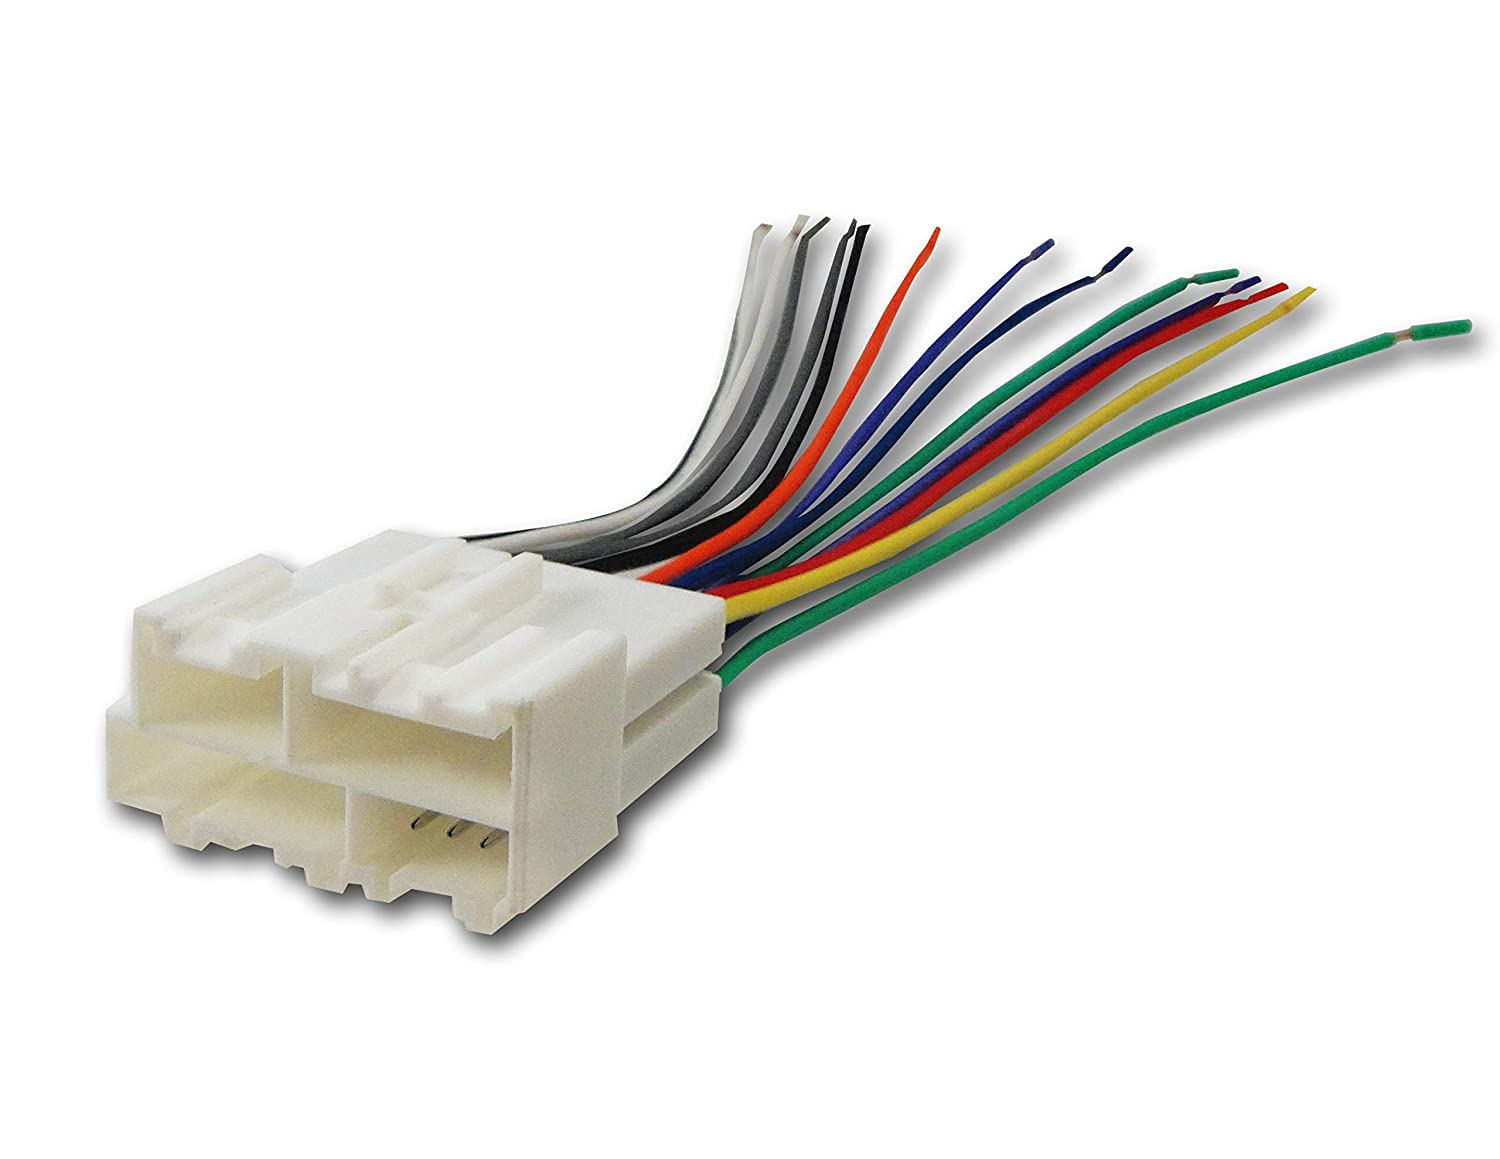 Absolute USA Inc. 70-1858, GWH-344 Absolute USA A344-1858 Radio Wiring Harness for General Motors 1998-2005 Power 4 Speaker